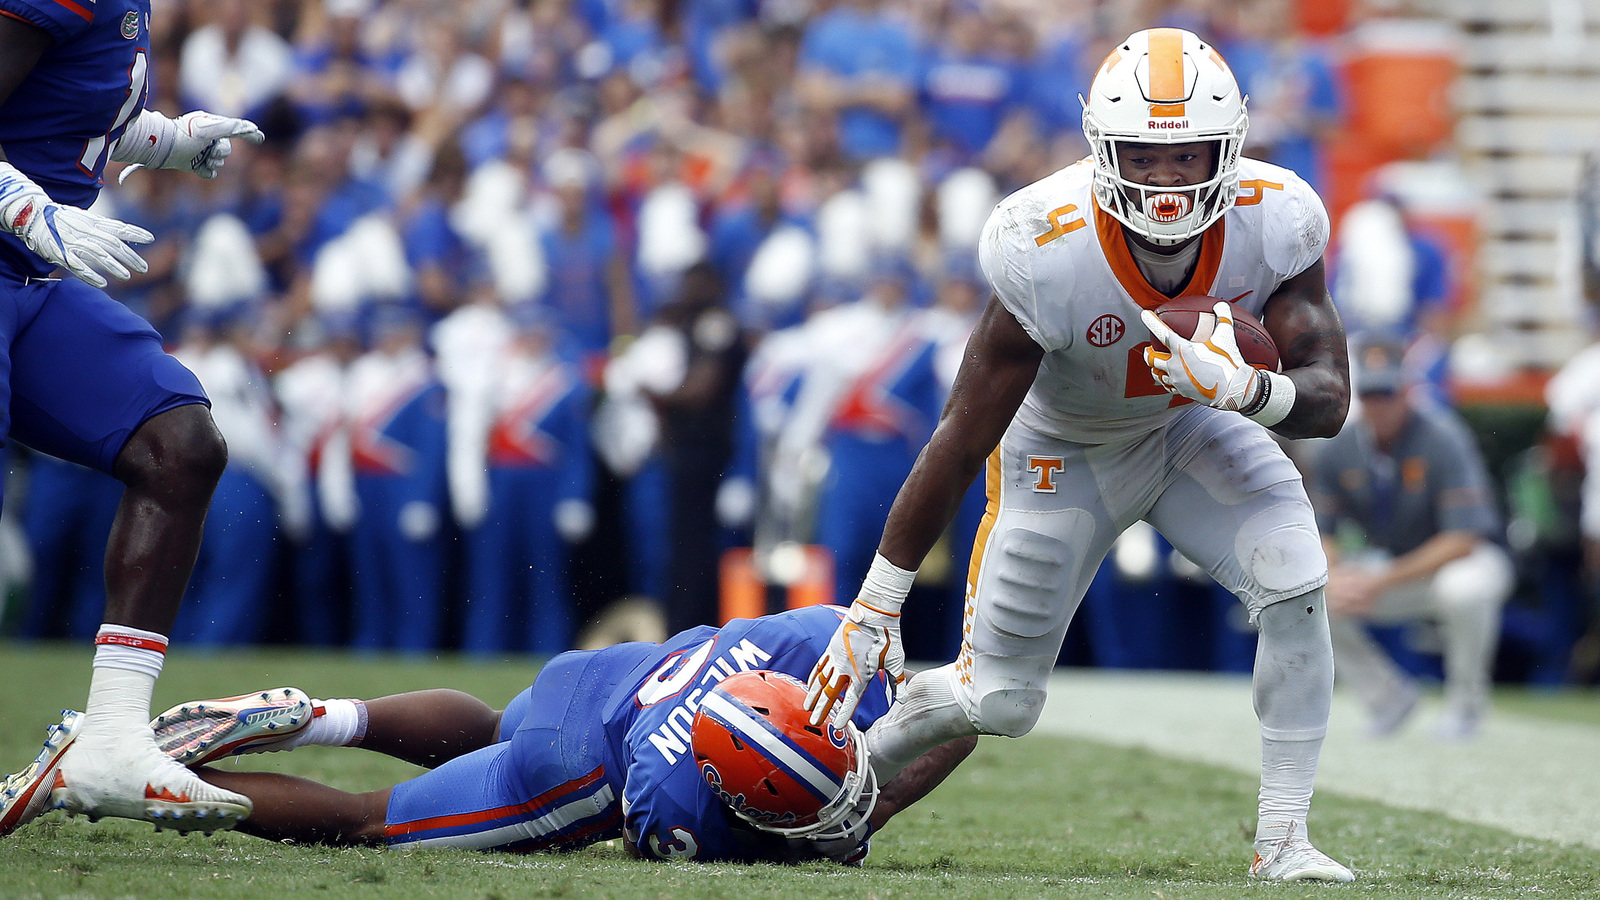 Tennessee RB John Kelly gets penalty for doing Gator Chomp ...